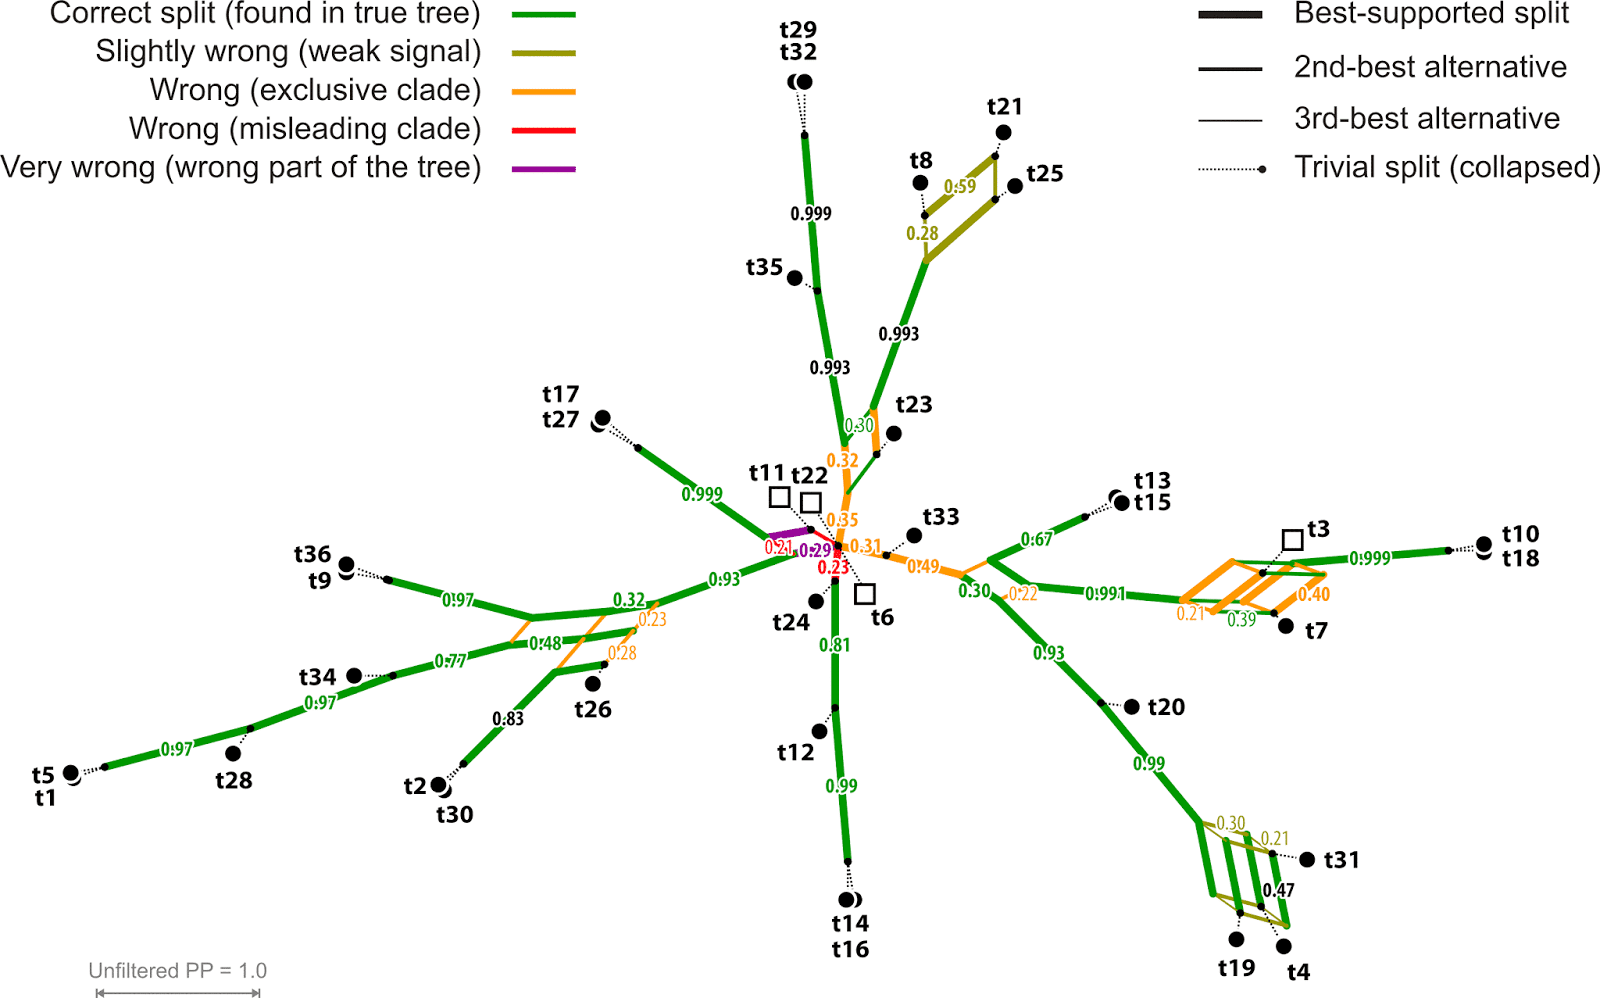 from Gibson molecular dating of phylogenetic trees